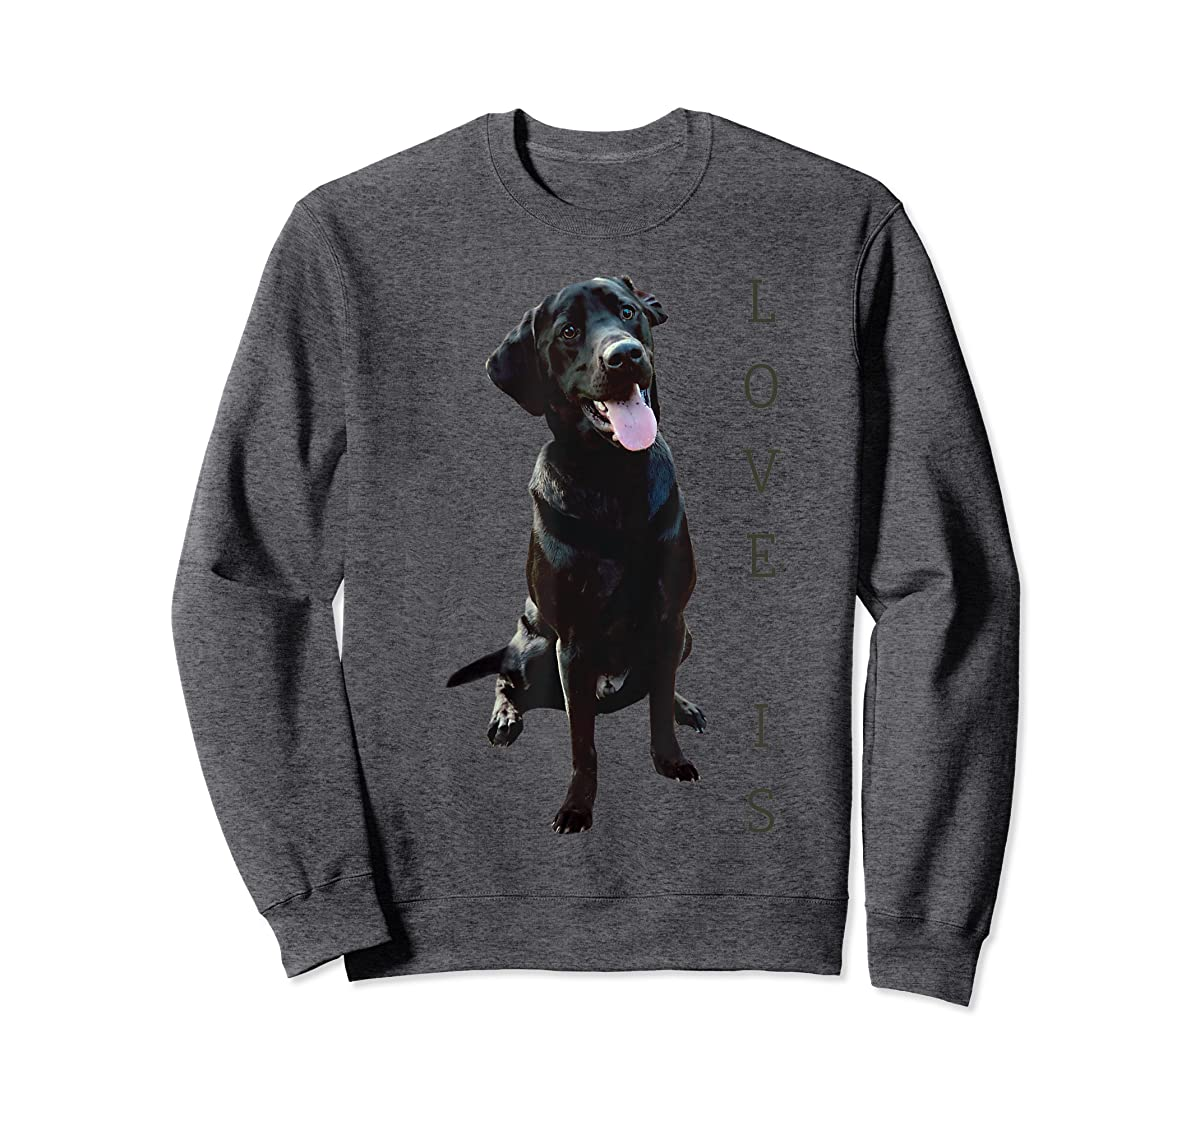 Labrador Retriever Shirt Women Men Kids Black Lab Dog Mom-Sweatshirt-Dark Heather